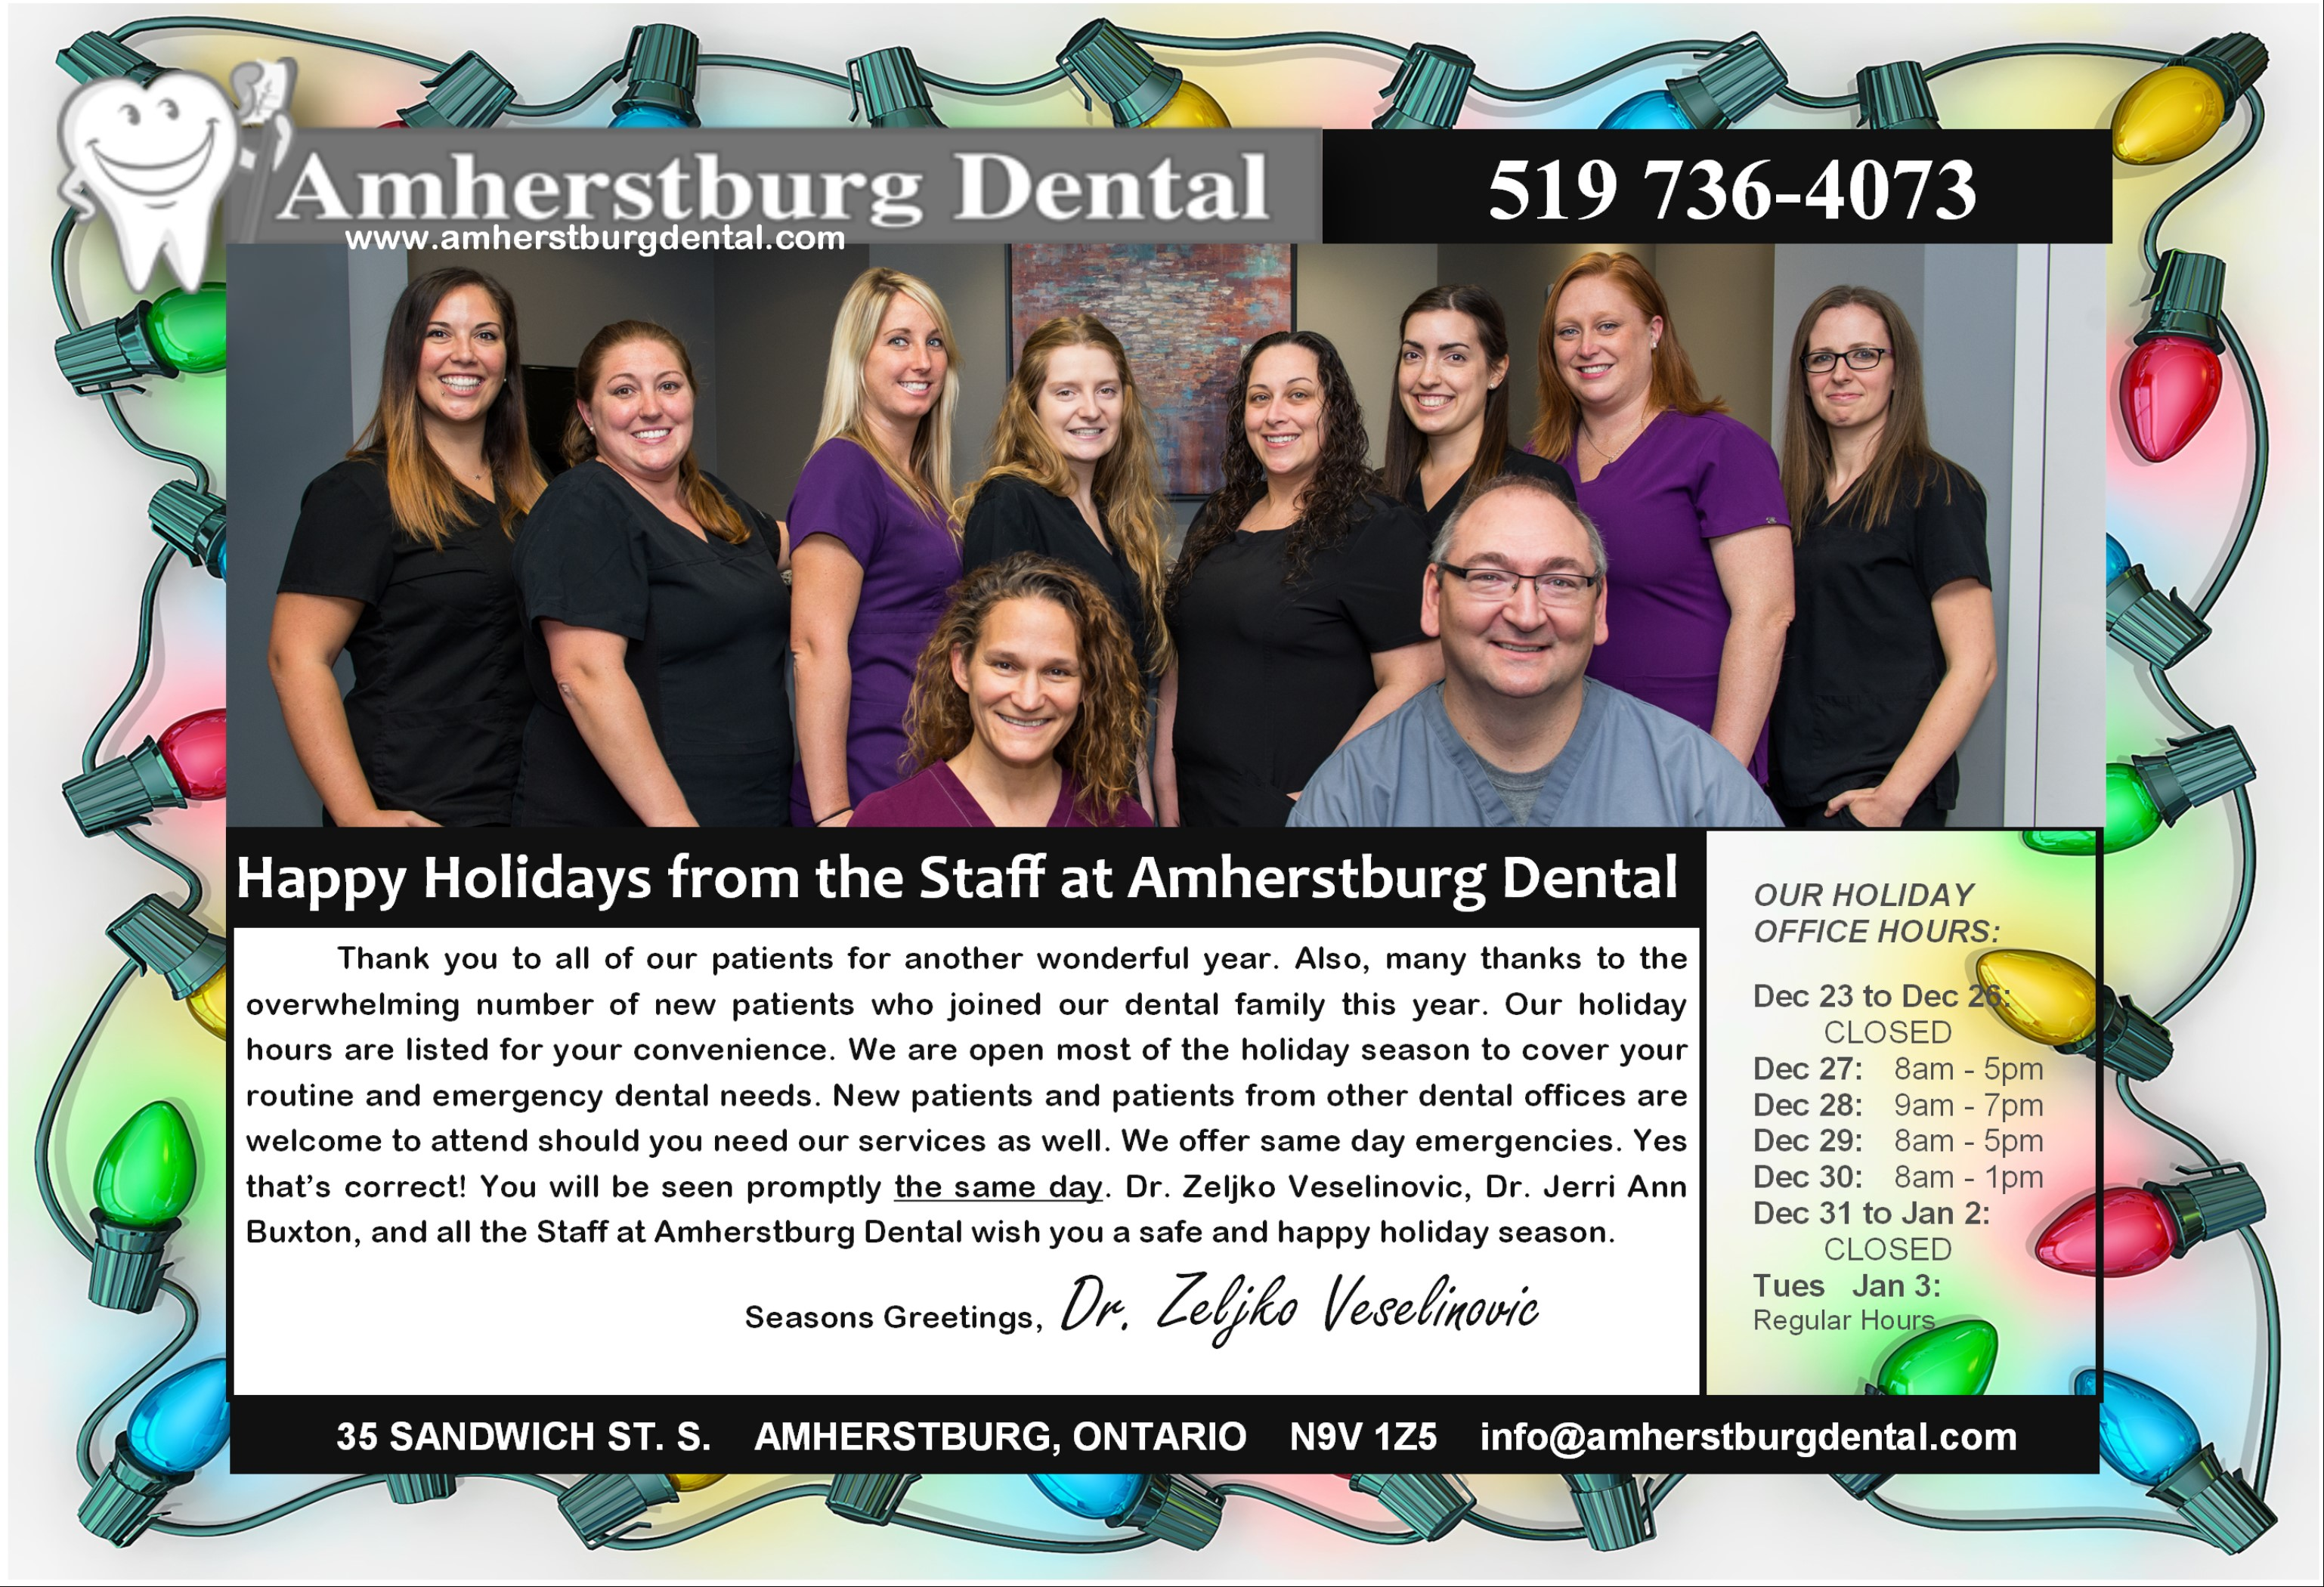 amherstburg-dental-holiday-hours-family-and-cosmetic-dentistry-amherstburg-ontario-windsor-ontario-essex-county-2016